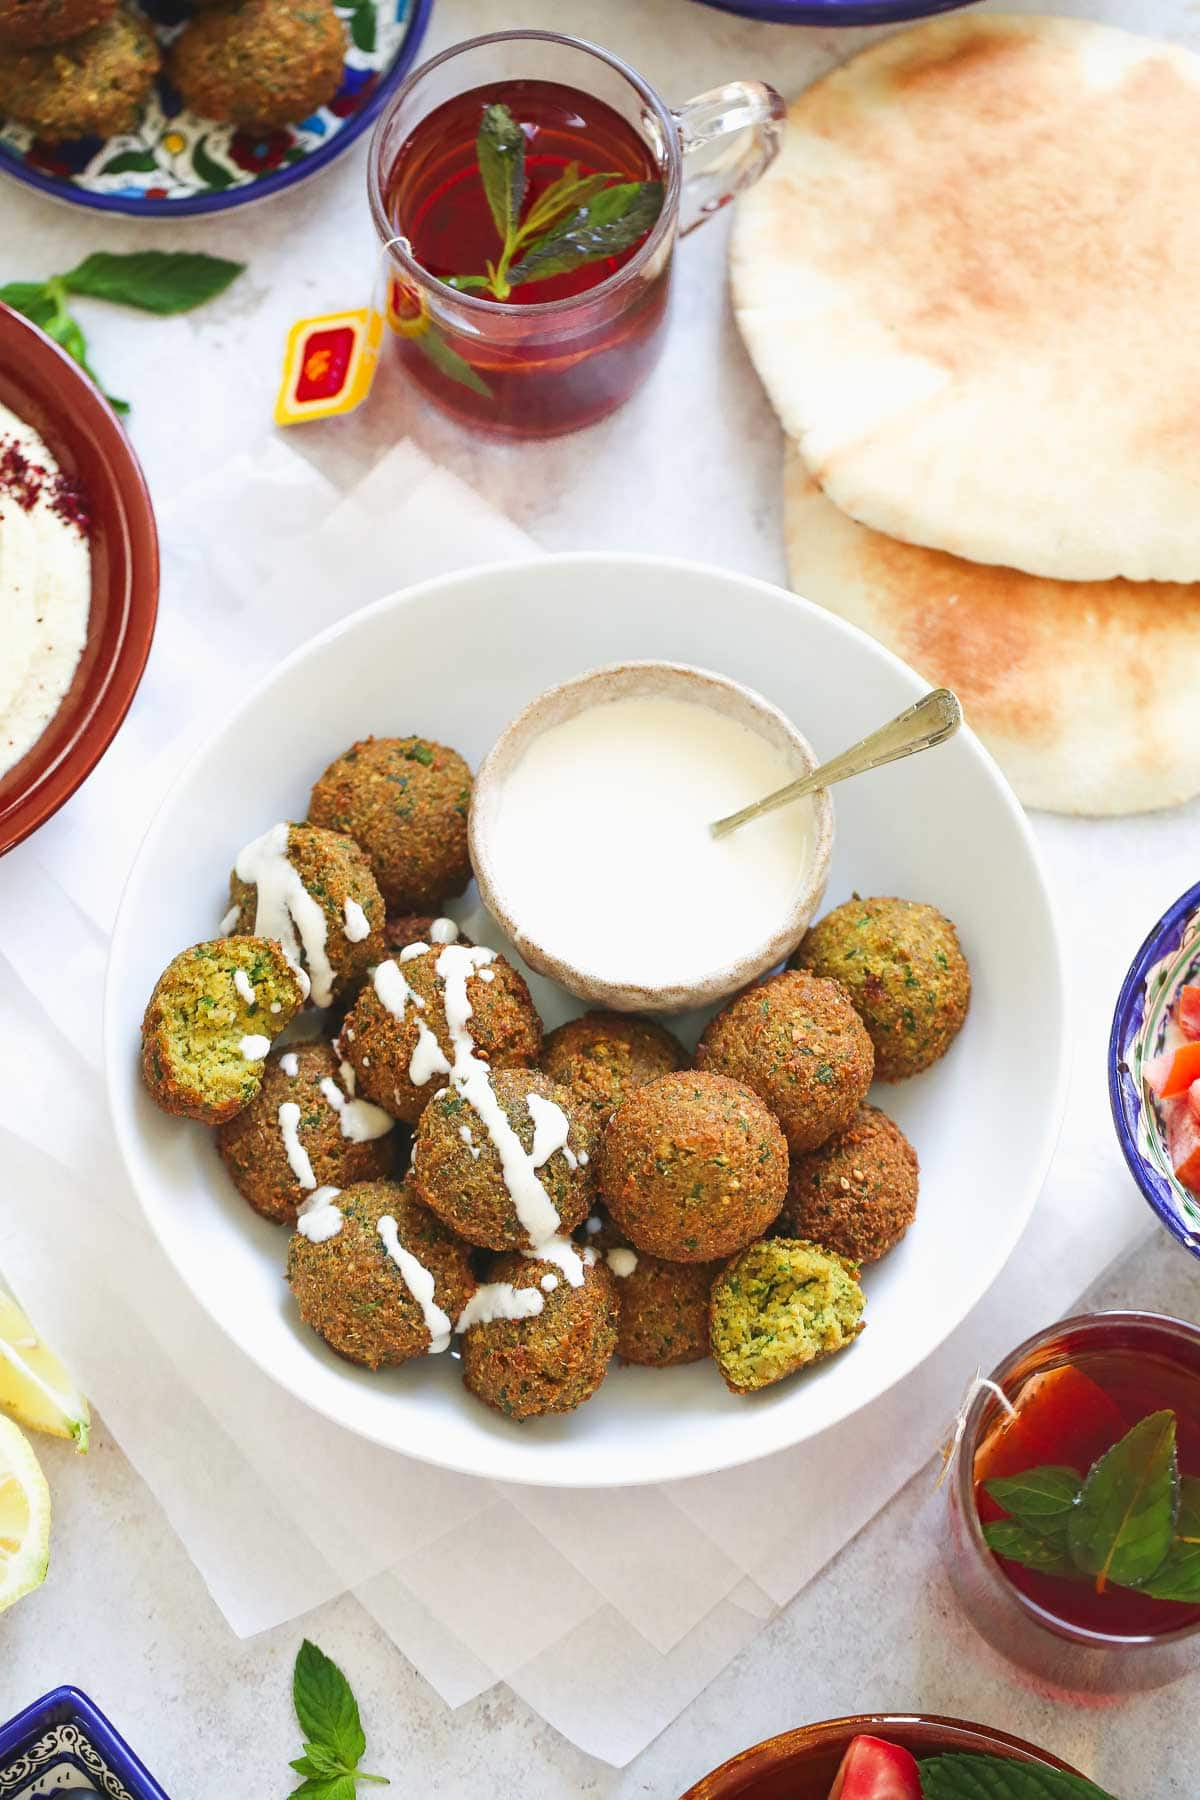 falafel spread with tahini sauce, mint tea, and pita bread.